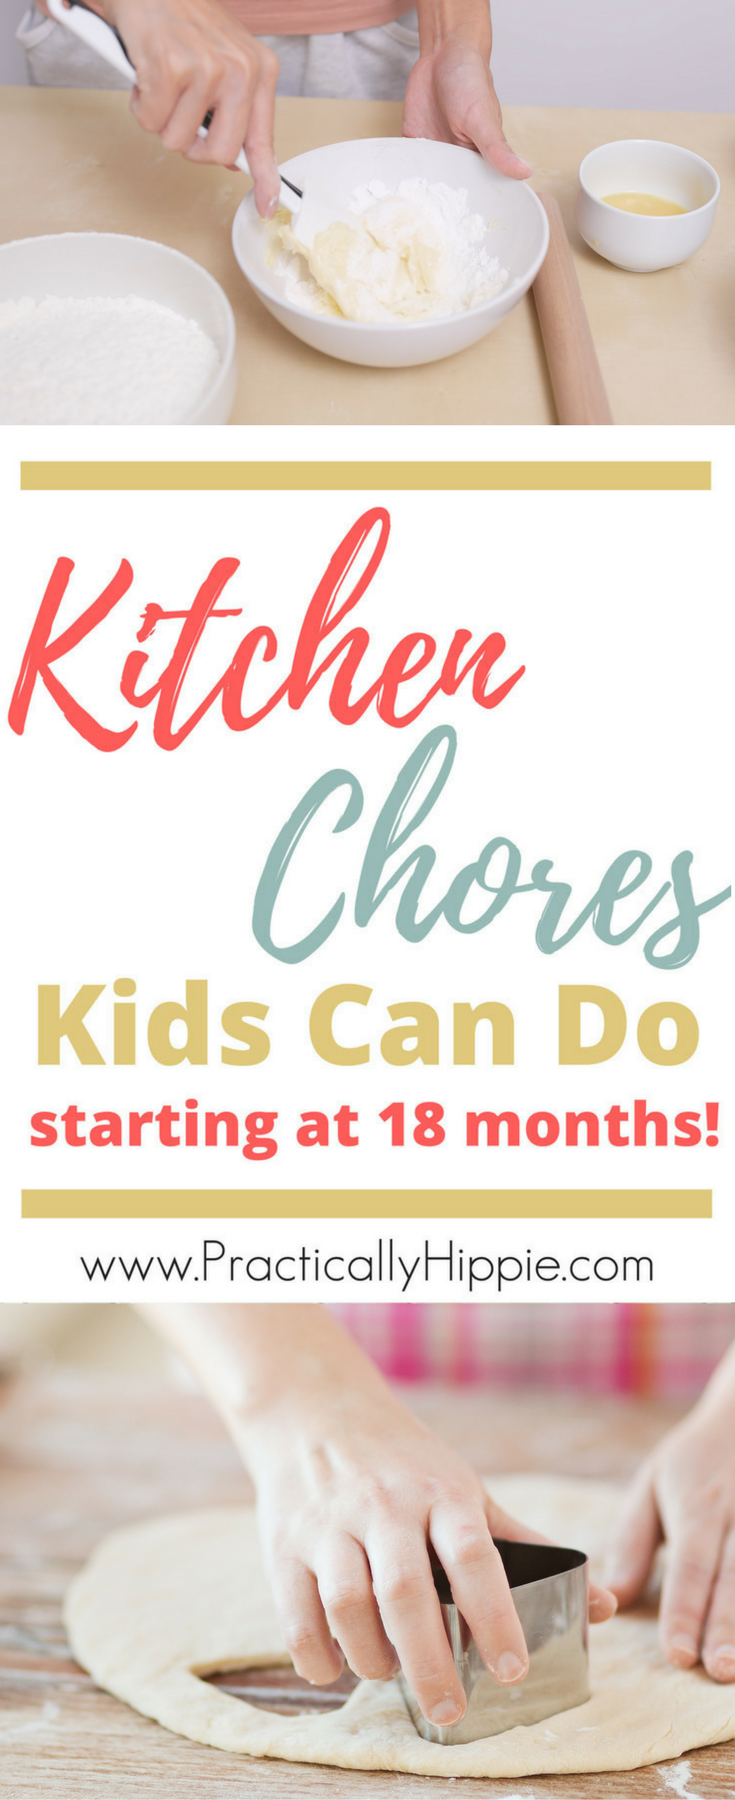 Free printable list of kitchen jobs for kids starting at 18 months. What can kids cook? So many options!